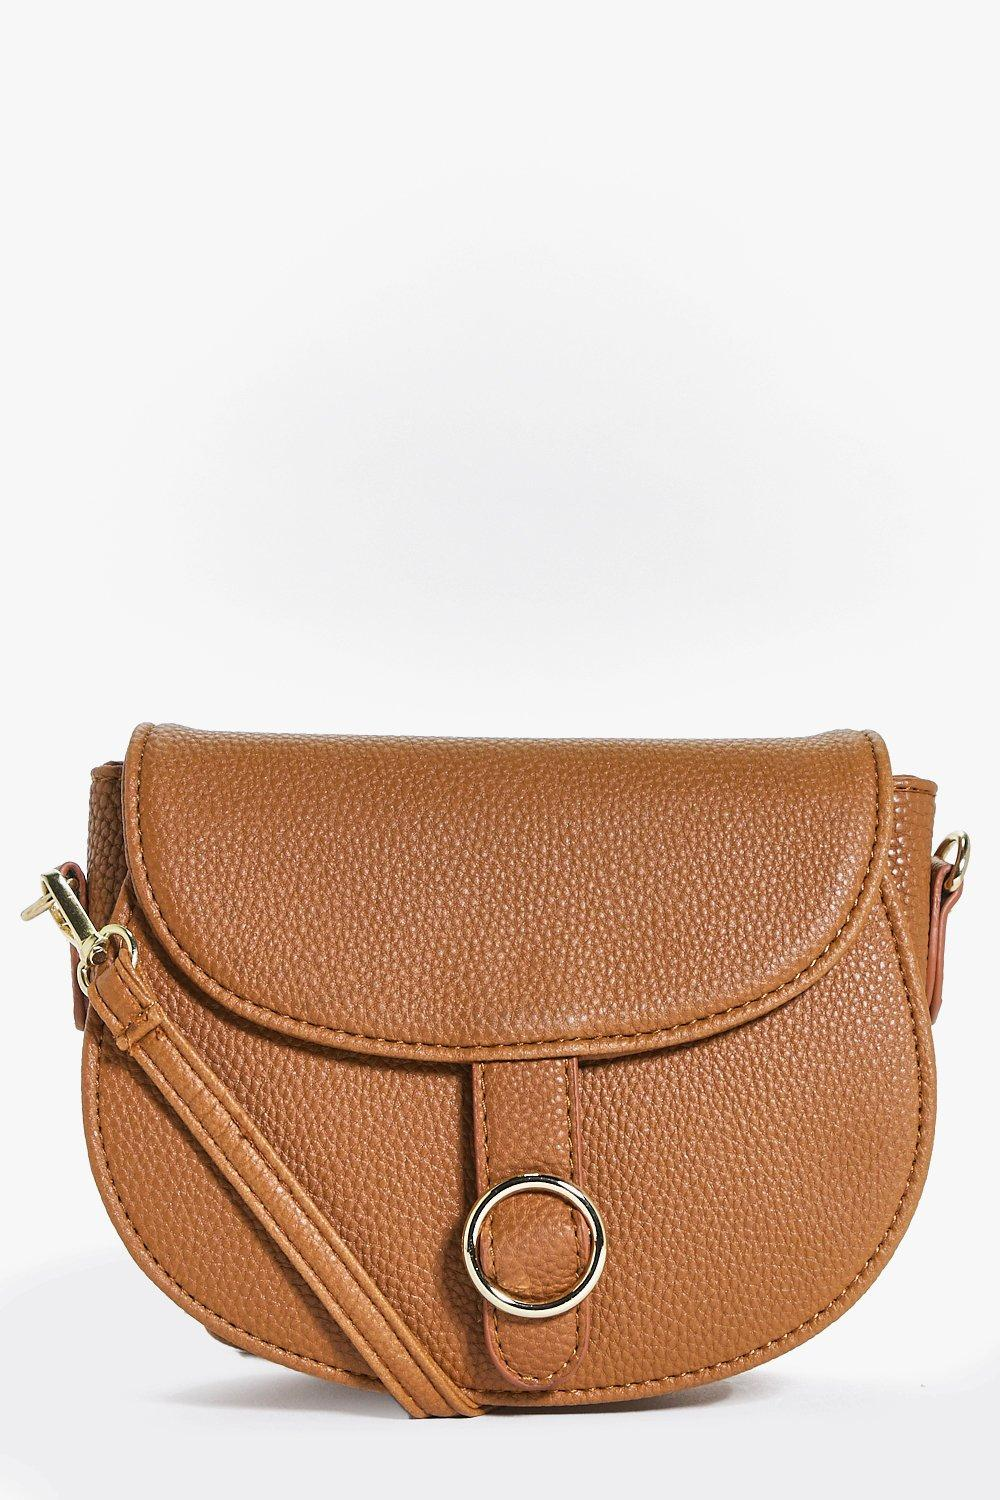 Circle Detail Saddle Bag - tan